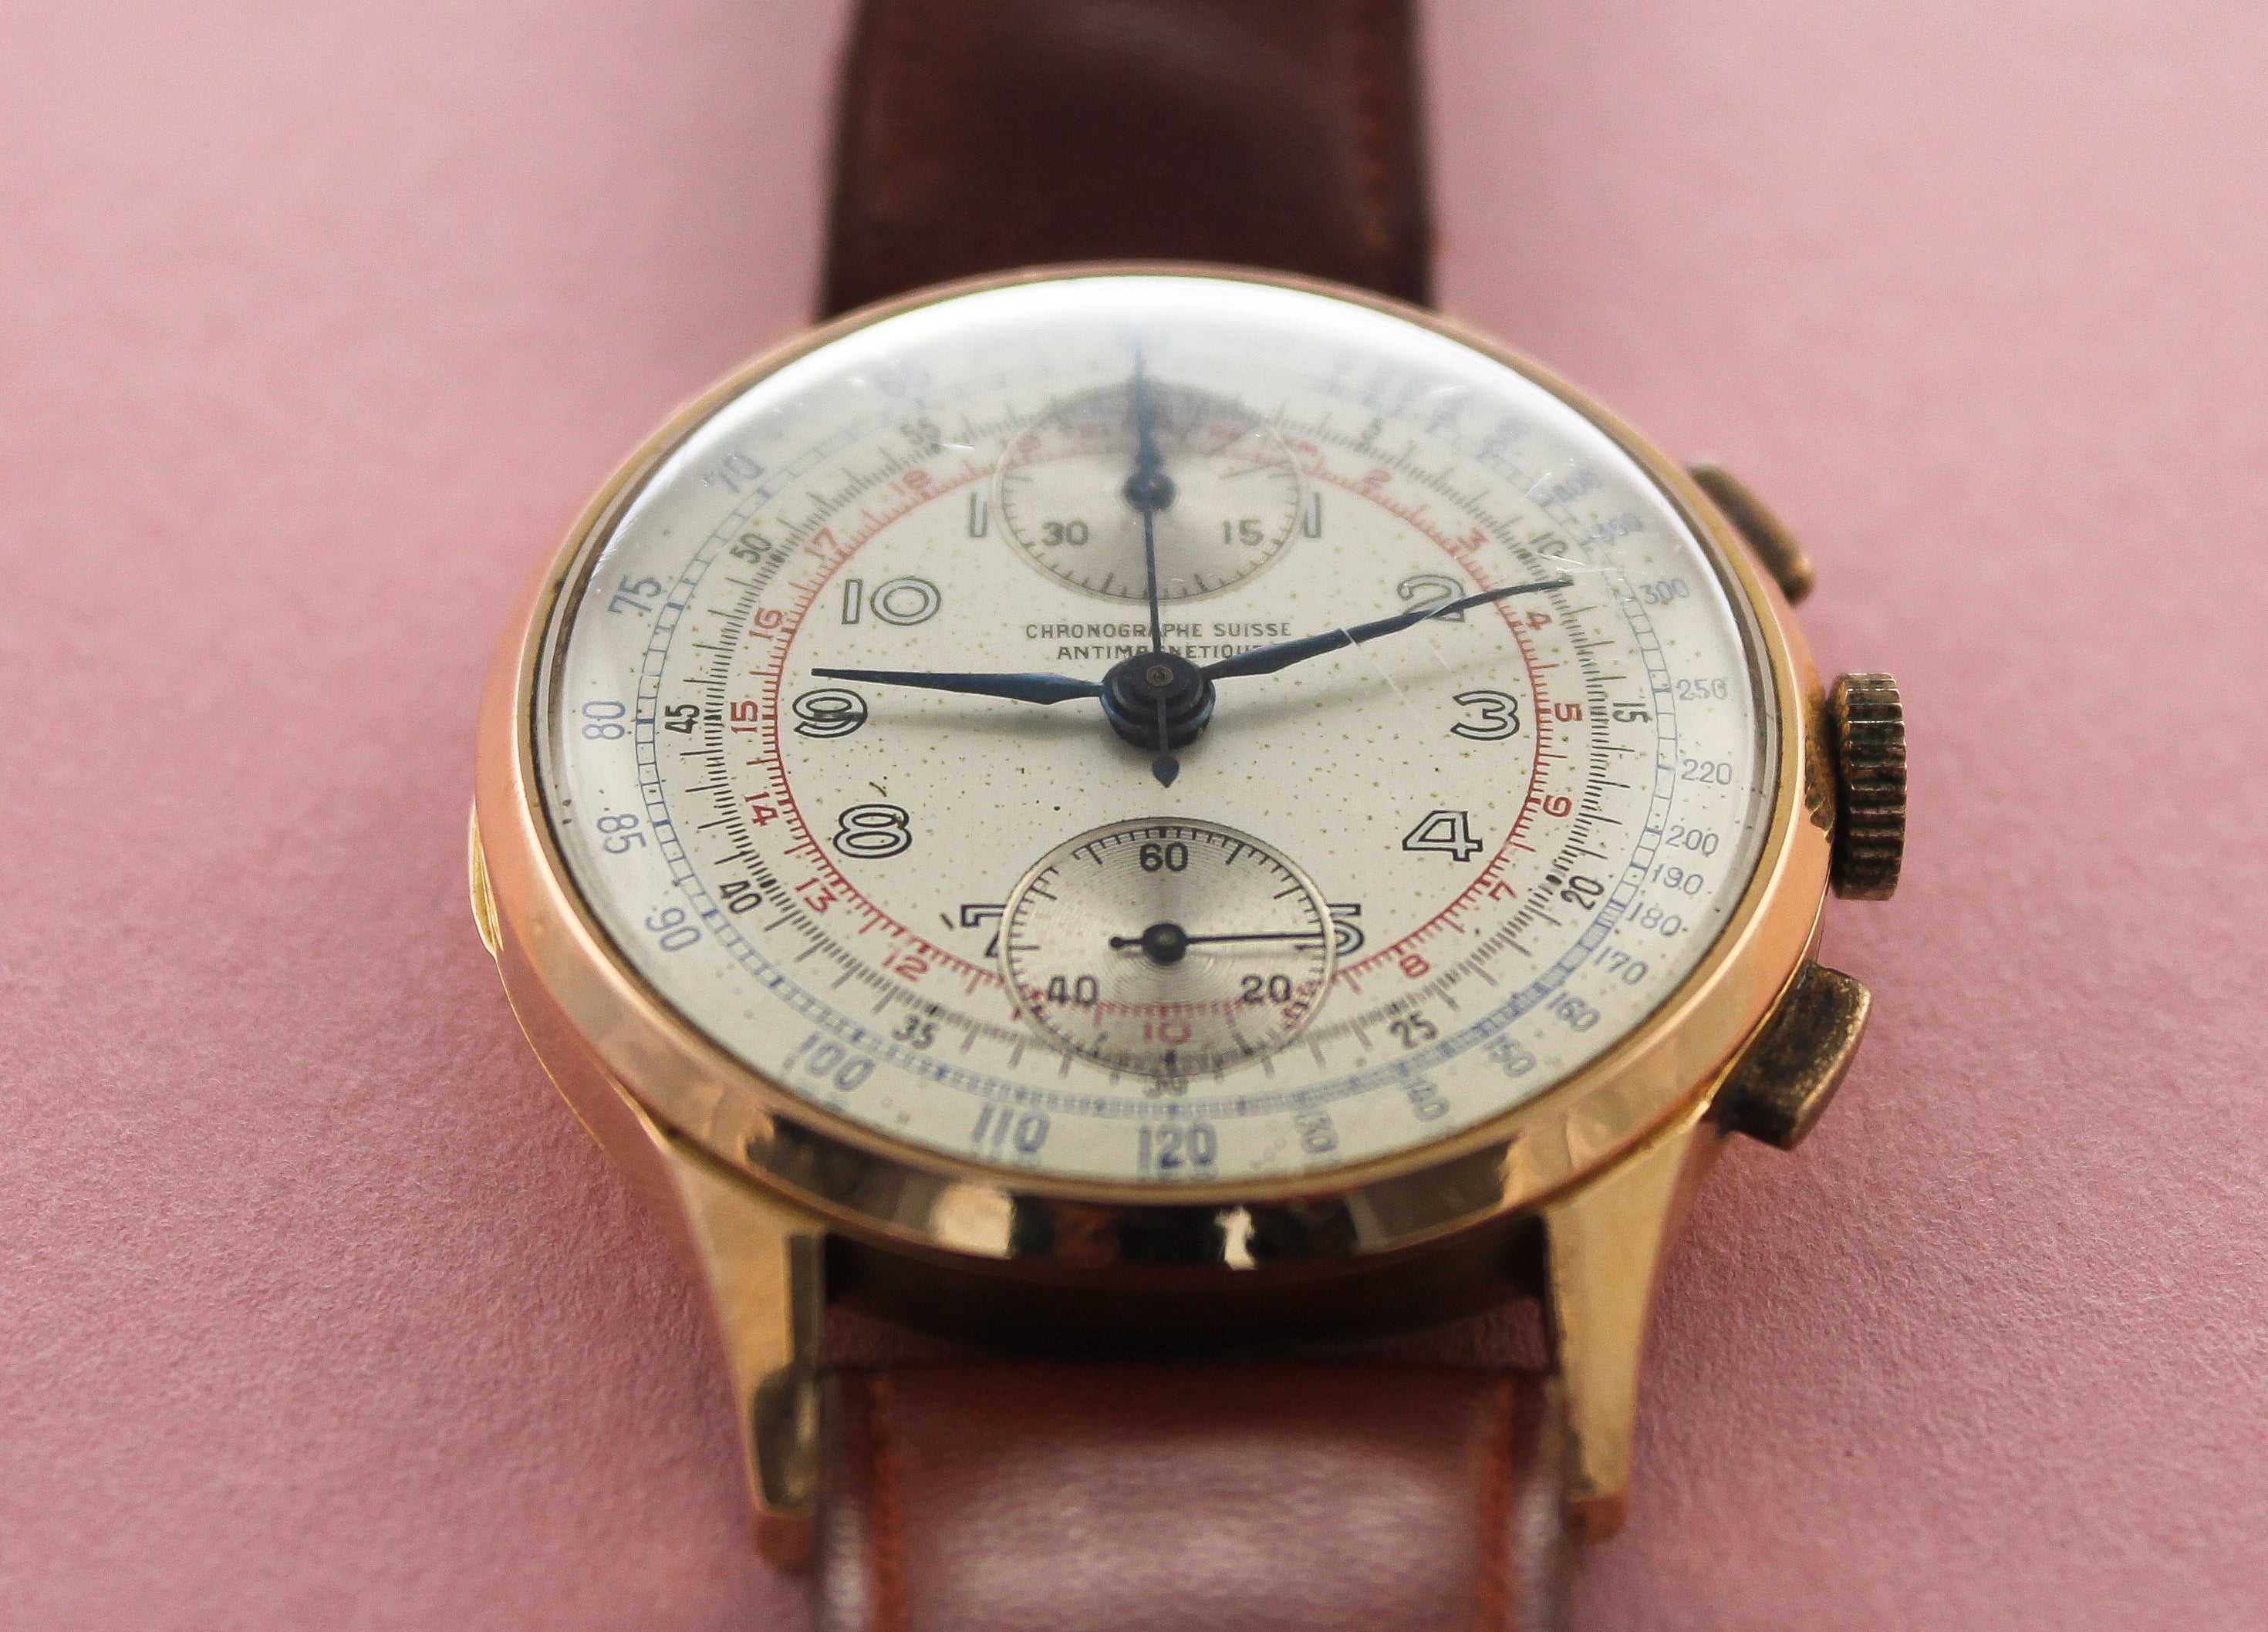 CHRONOGRAPHE SUISSE Triple Register Chronograph (c.1940s)